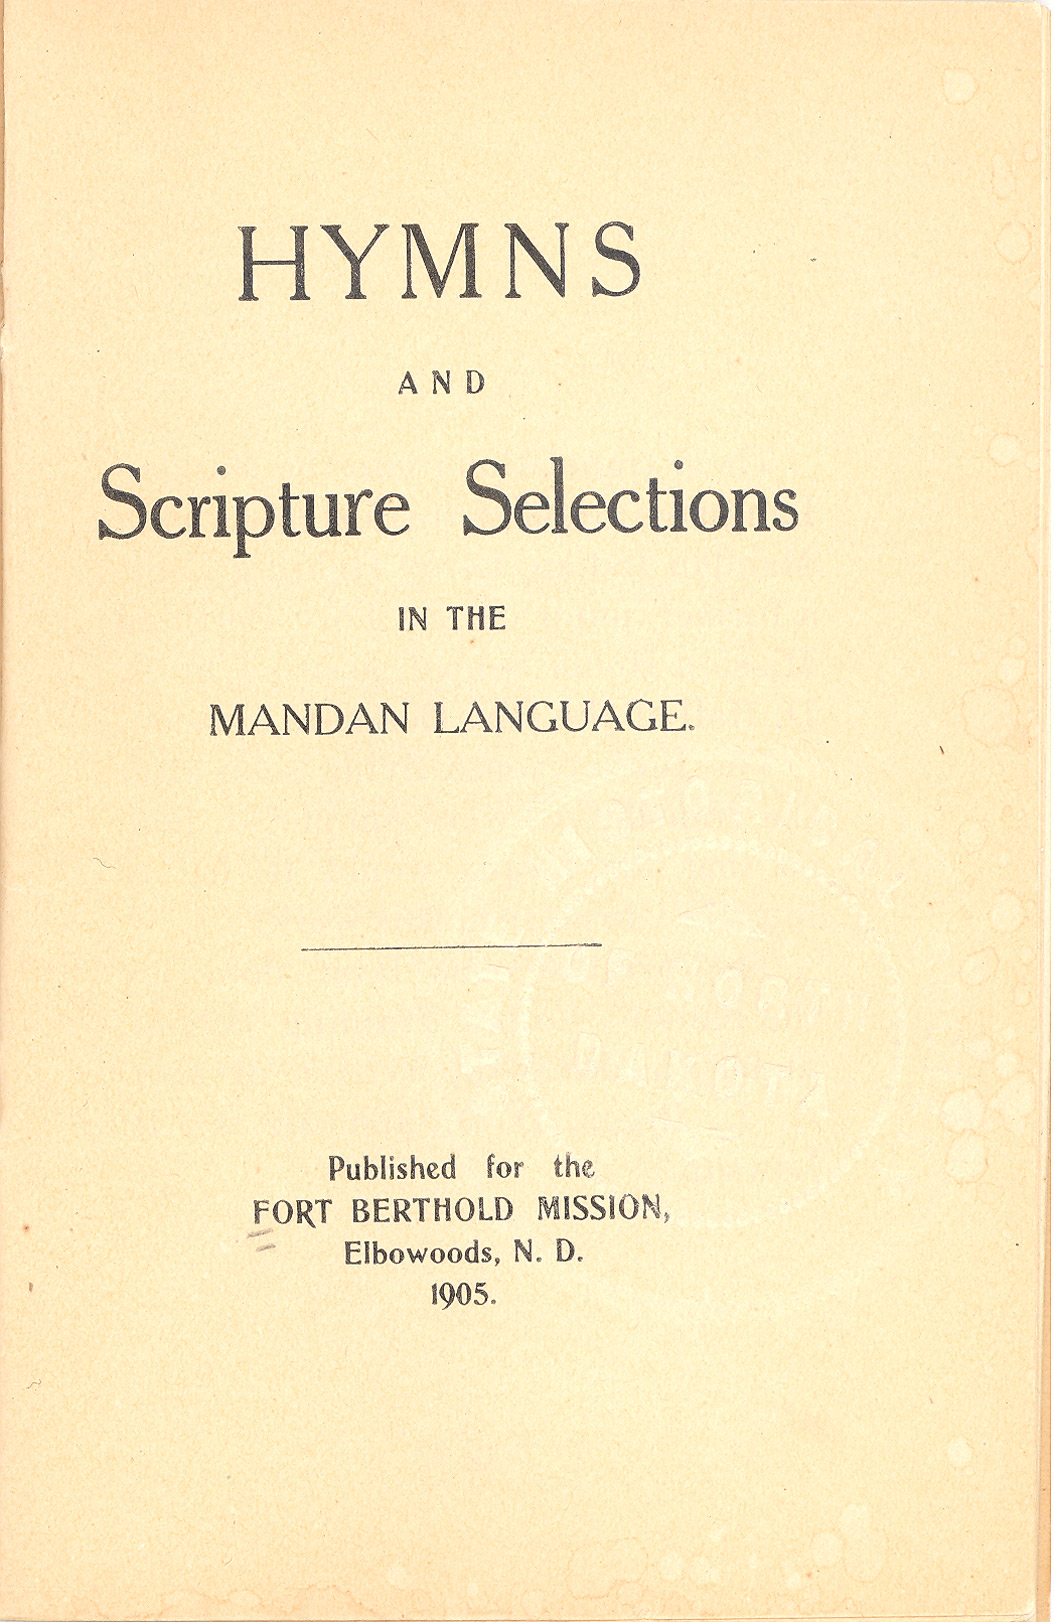 Mandan Hymns. Mandans learned traditional Christian hymns and prayers in translations by Reverend C. L. Hall. Hall studied the languages of the people of Fort Berthold and eventually came to understand the languages well enough to translate hymns into each of the three languages of Fort Berthold.